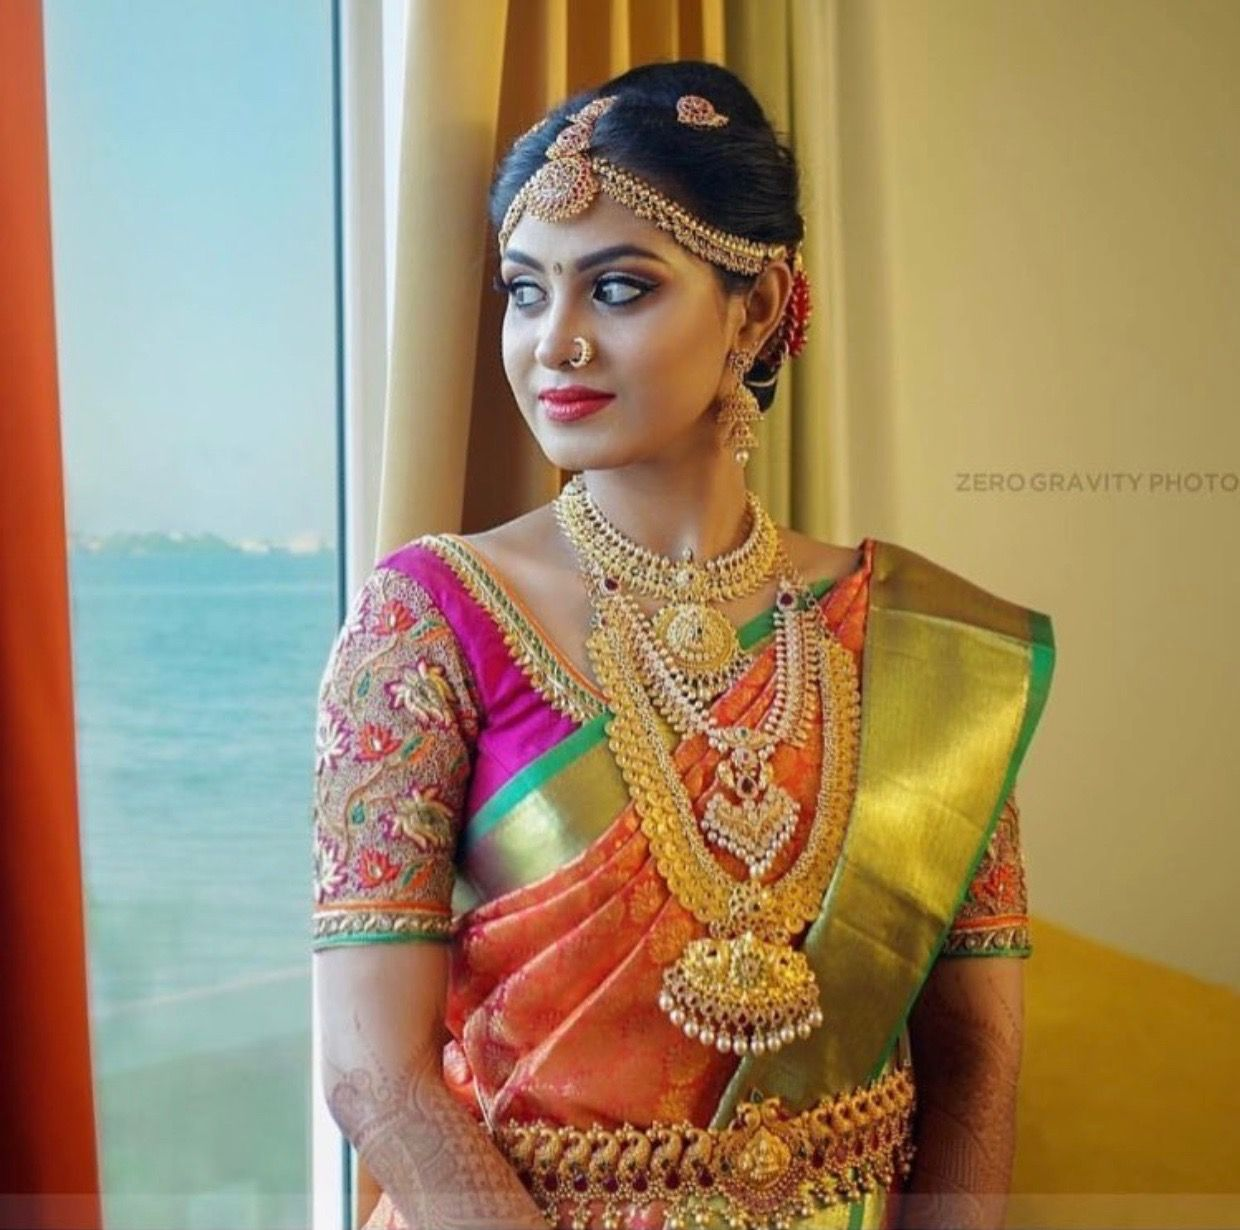 Pin by flying duck on jewellery | Pinterest | Saree, Blouse ...